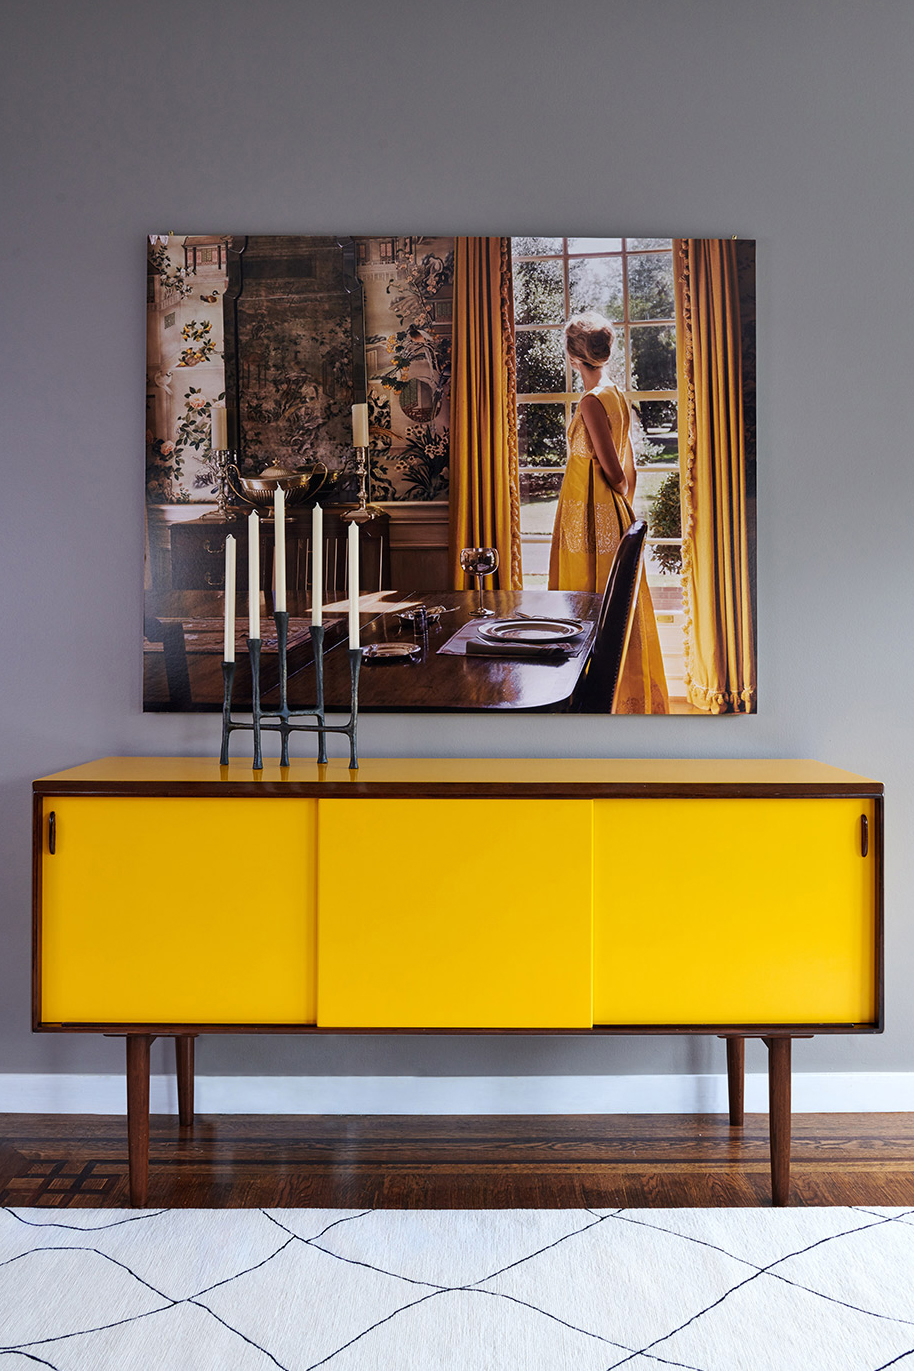 Teak mid century credenza restored with vibrant yellow lacquer